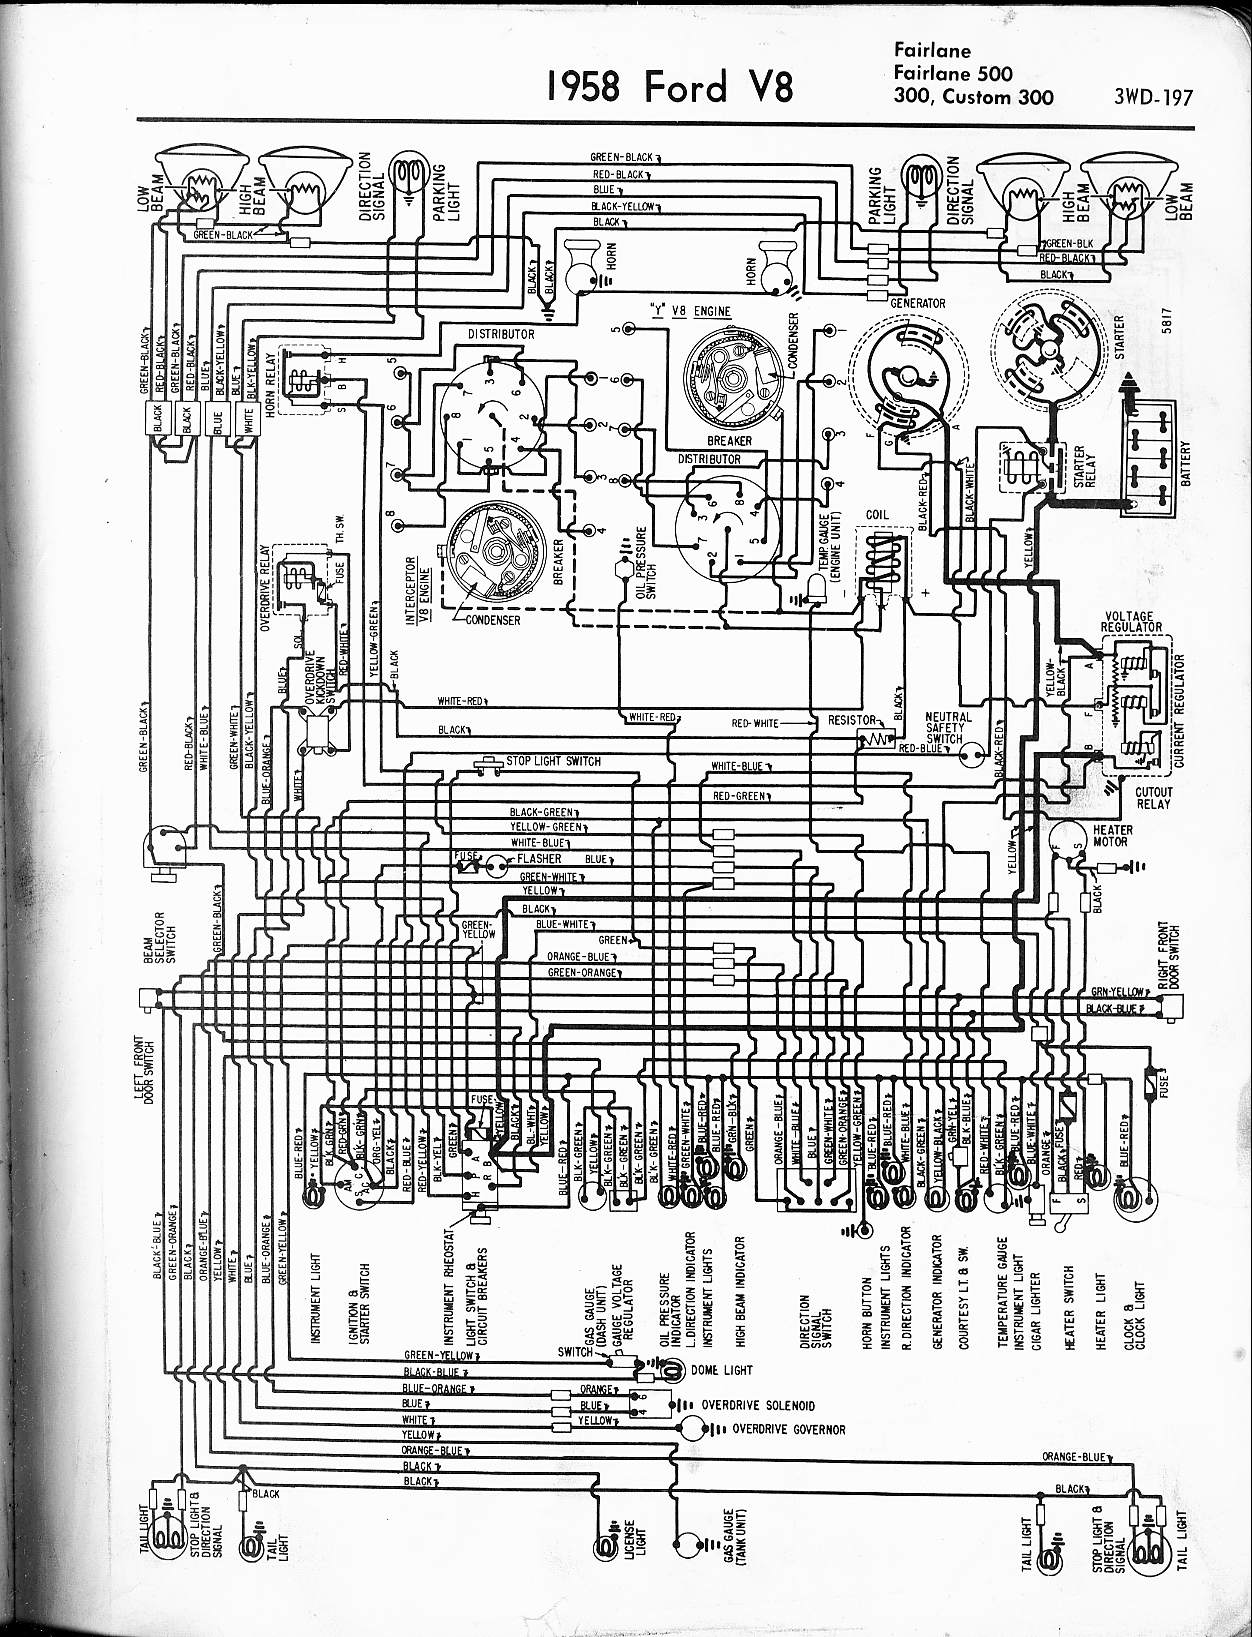 MWire5765 197 57 65 ford wiring diagrams ford wiring schematics at edmiracle.co